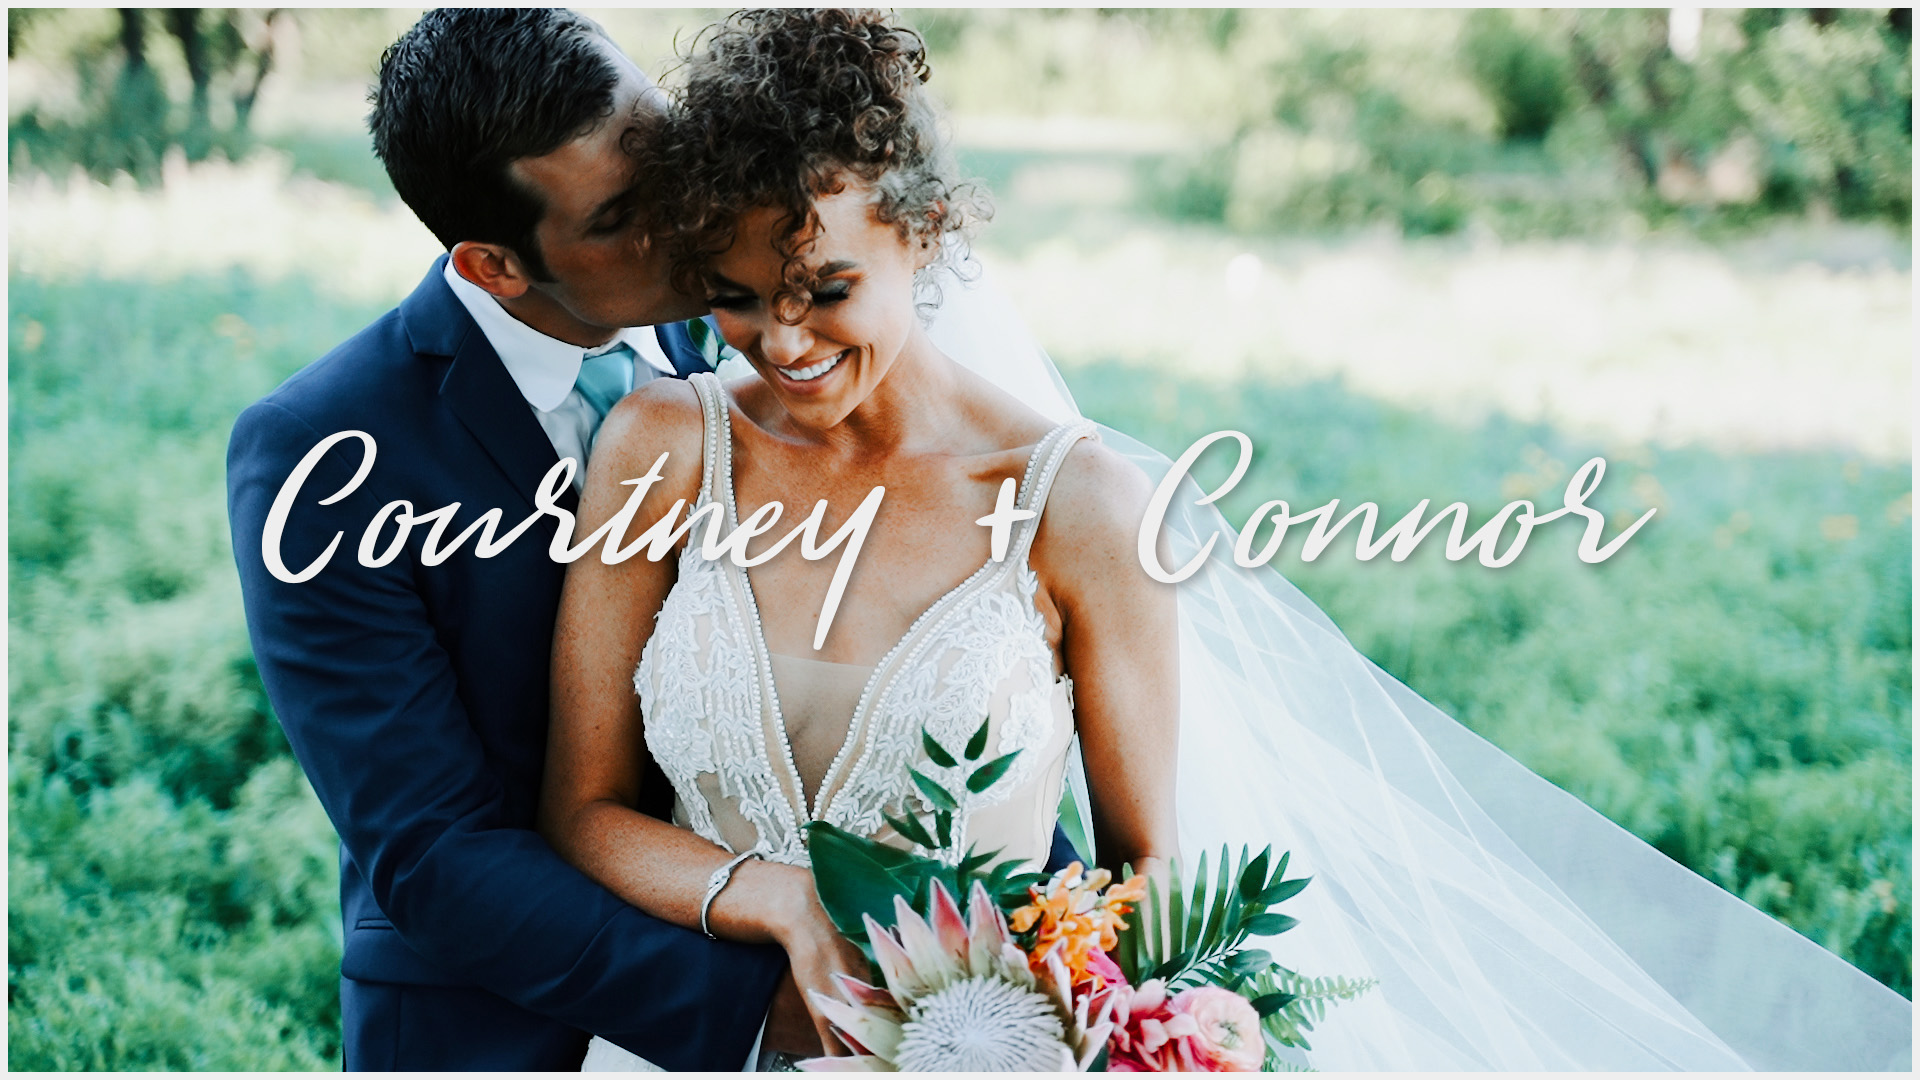 Courtney + Connor | Dripping Springs, Texas | Prospect House